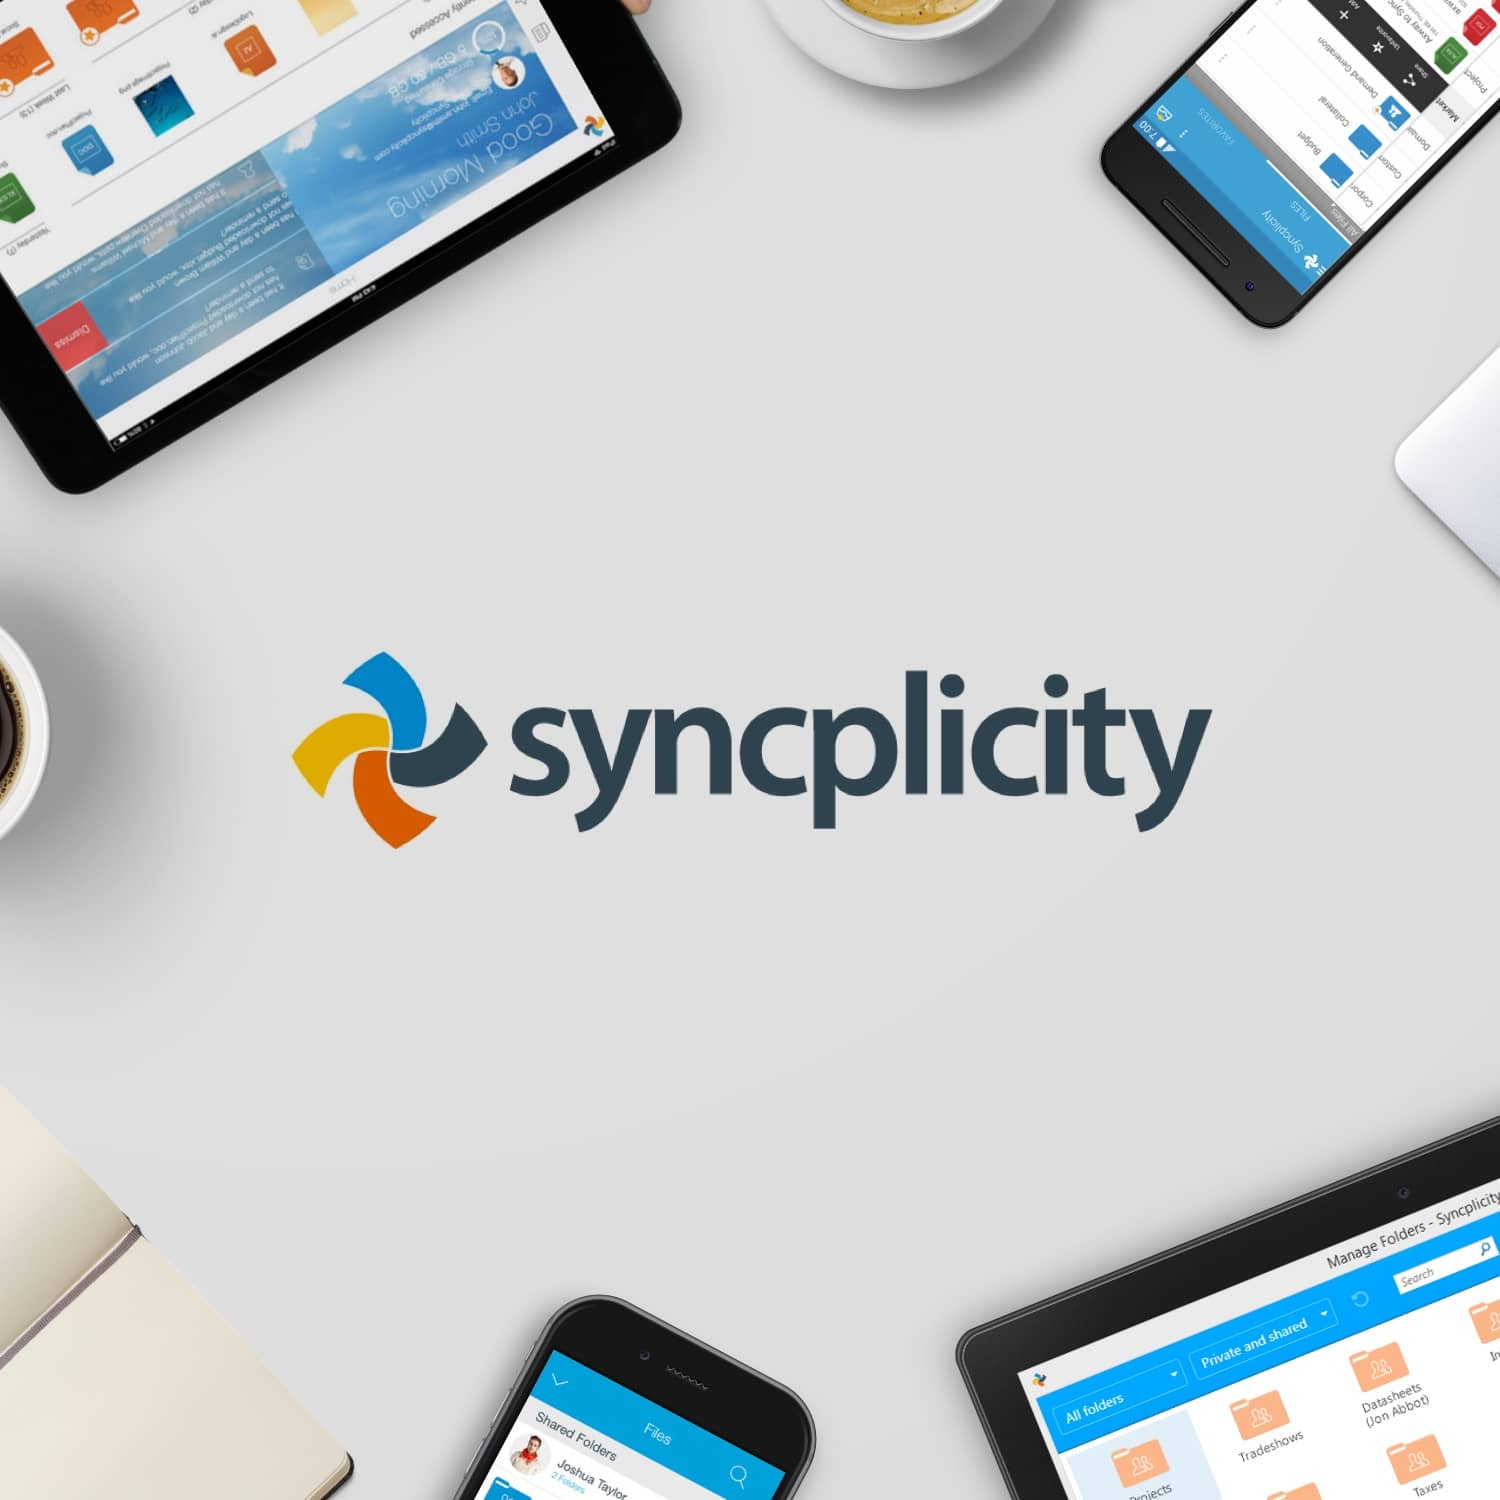 Case Study: Syncplicity